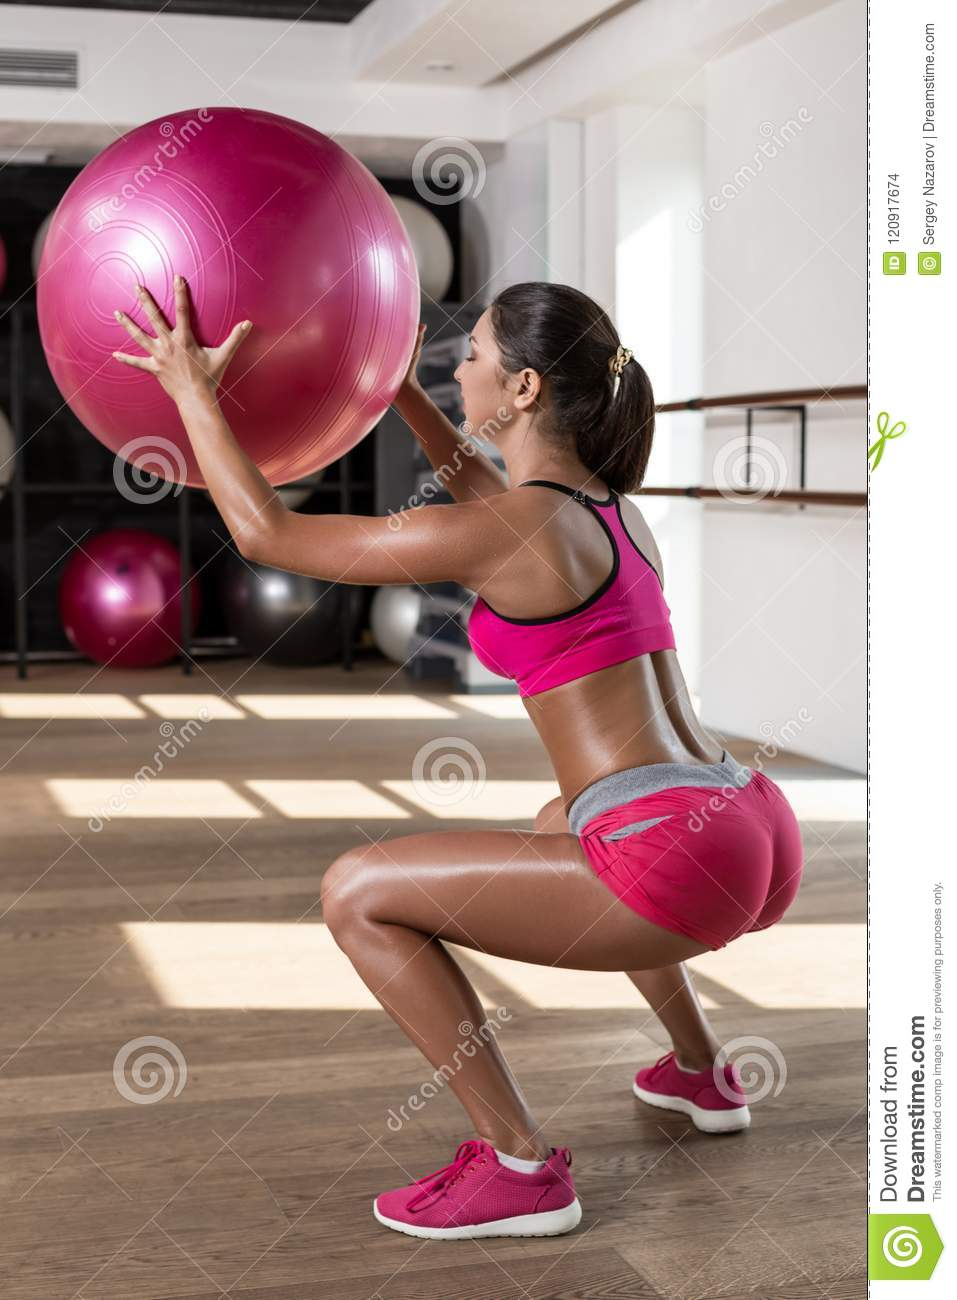 Strong female squatting on fitness mat with weight medicine ball in health club.